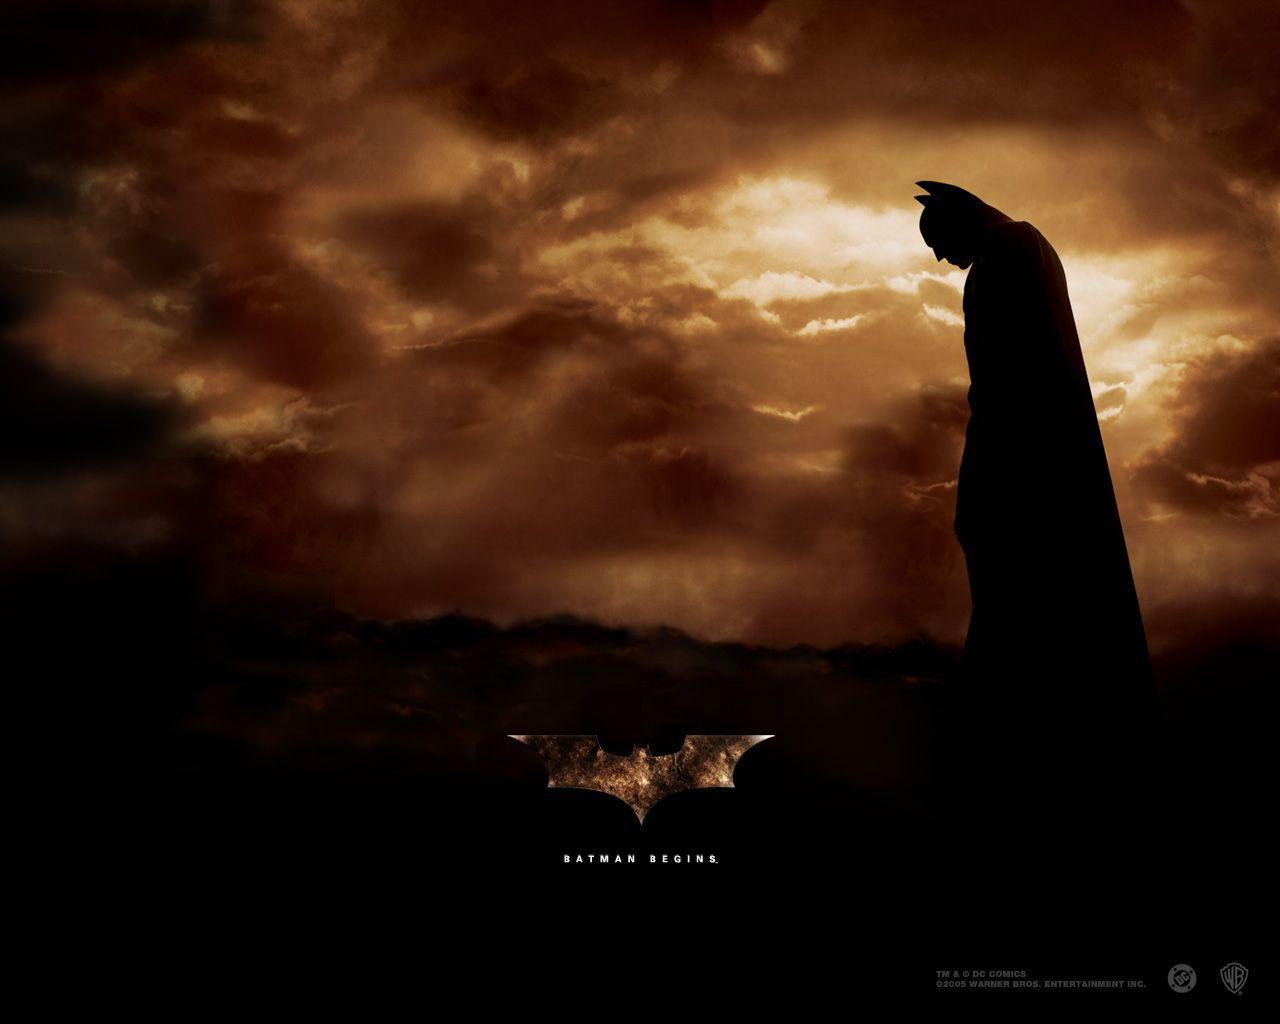 Batman Begins Movie Hd Wallpapers in Movies 1280x1024PX ...